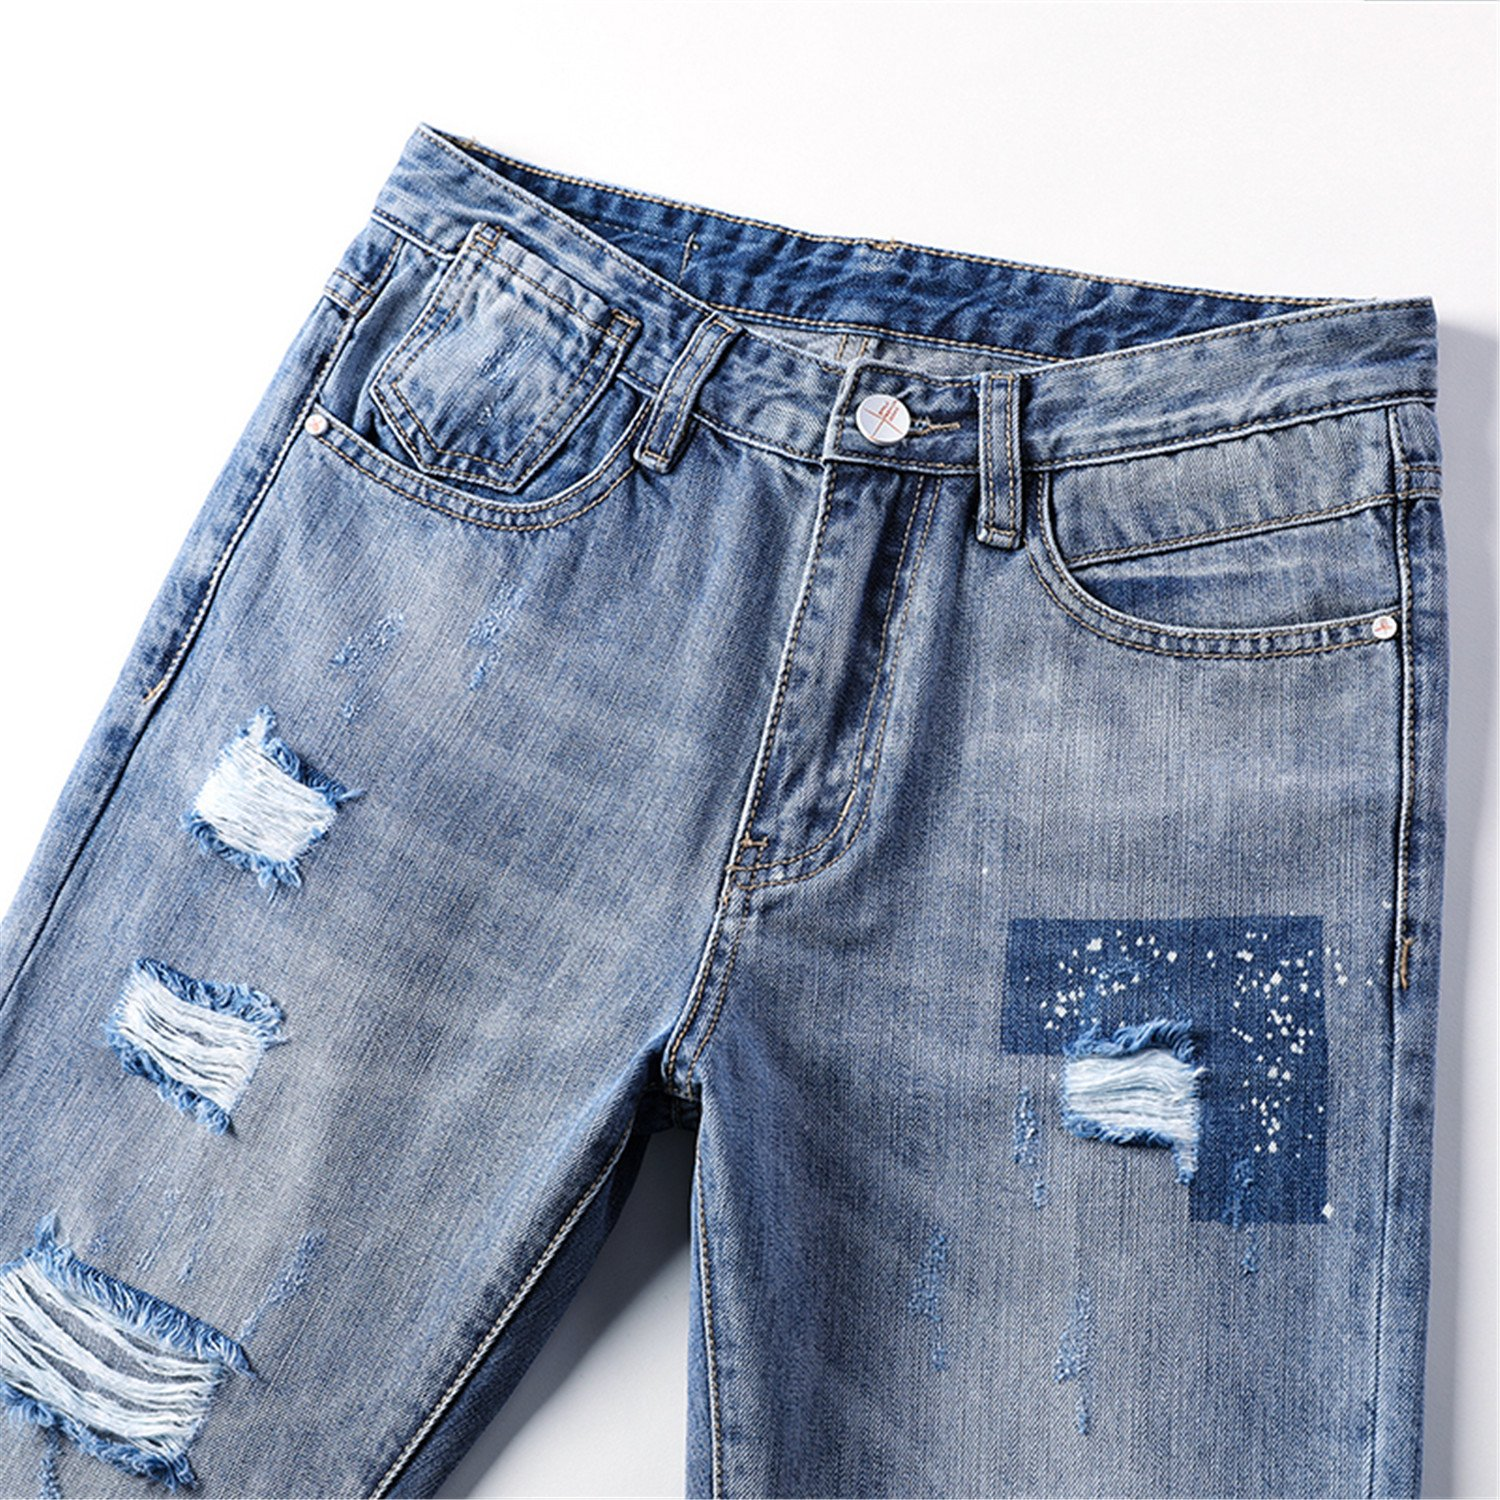 ad49f470ad0 Zcaosma Men s Jeans 2018 Summer Casual Denim Pants Ripped Male Trousers Boys  at Amazon Men s Clothing store